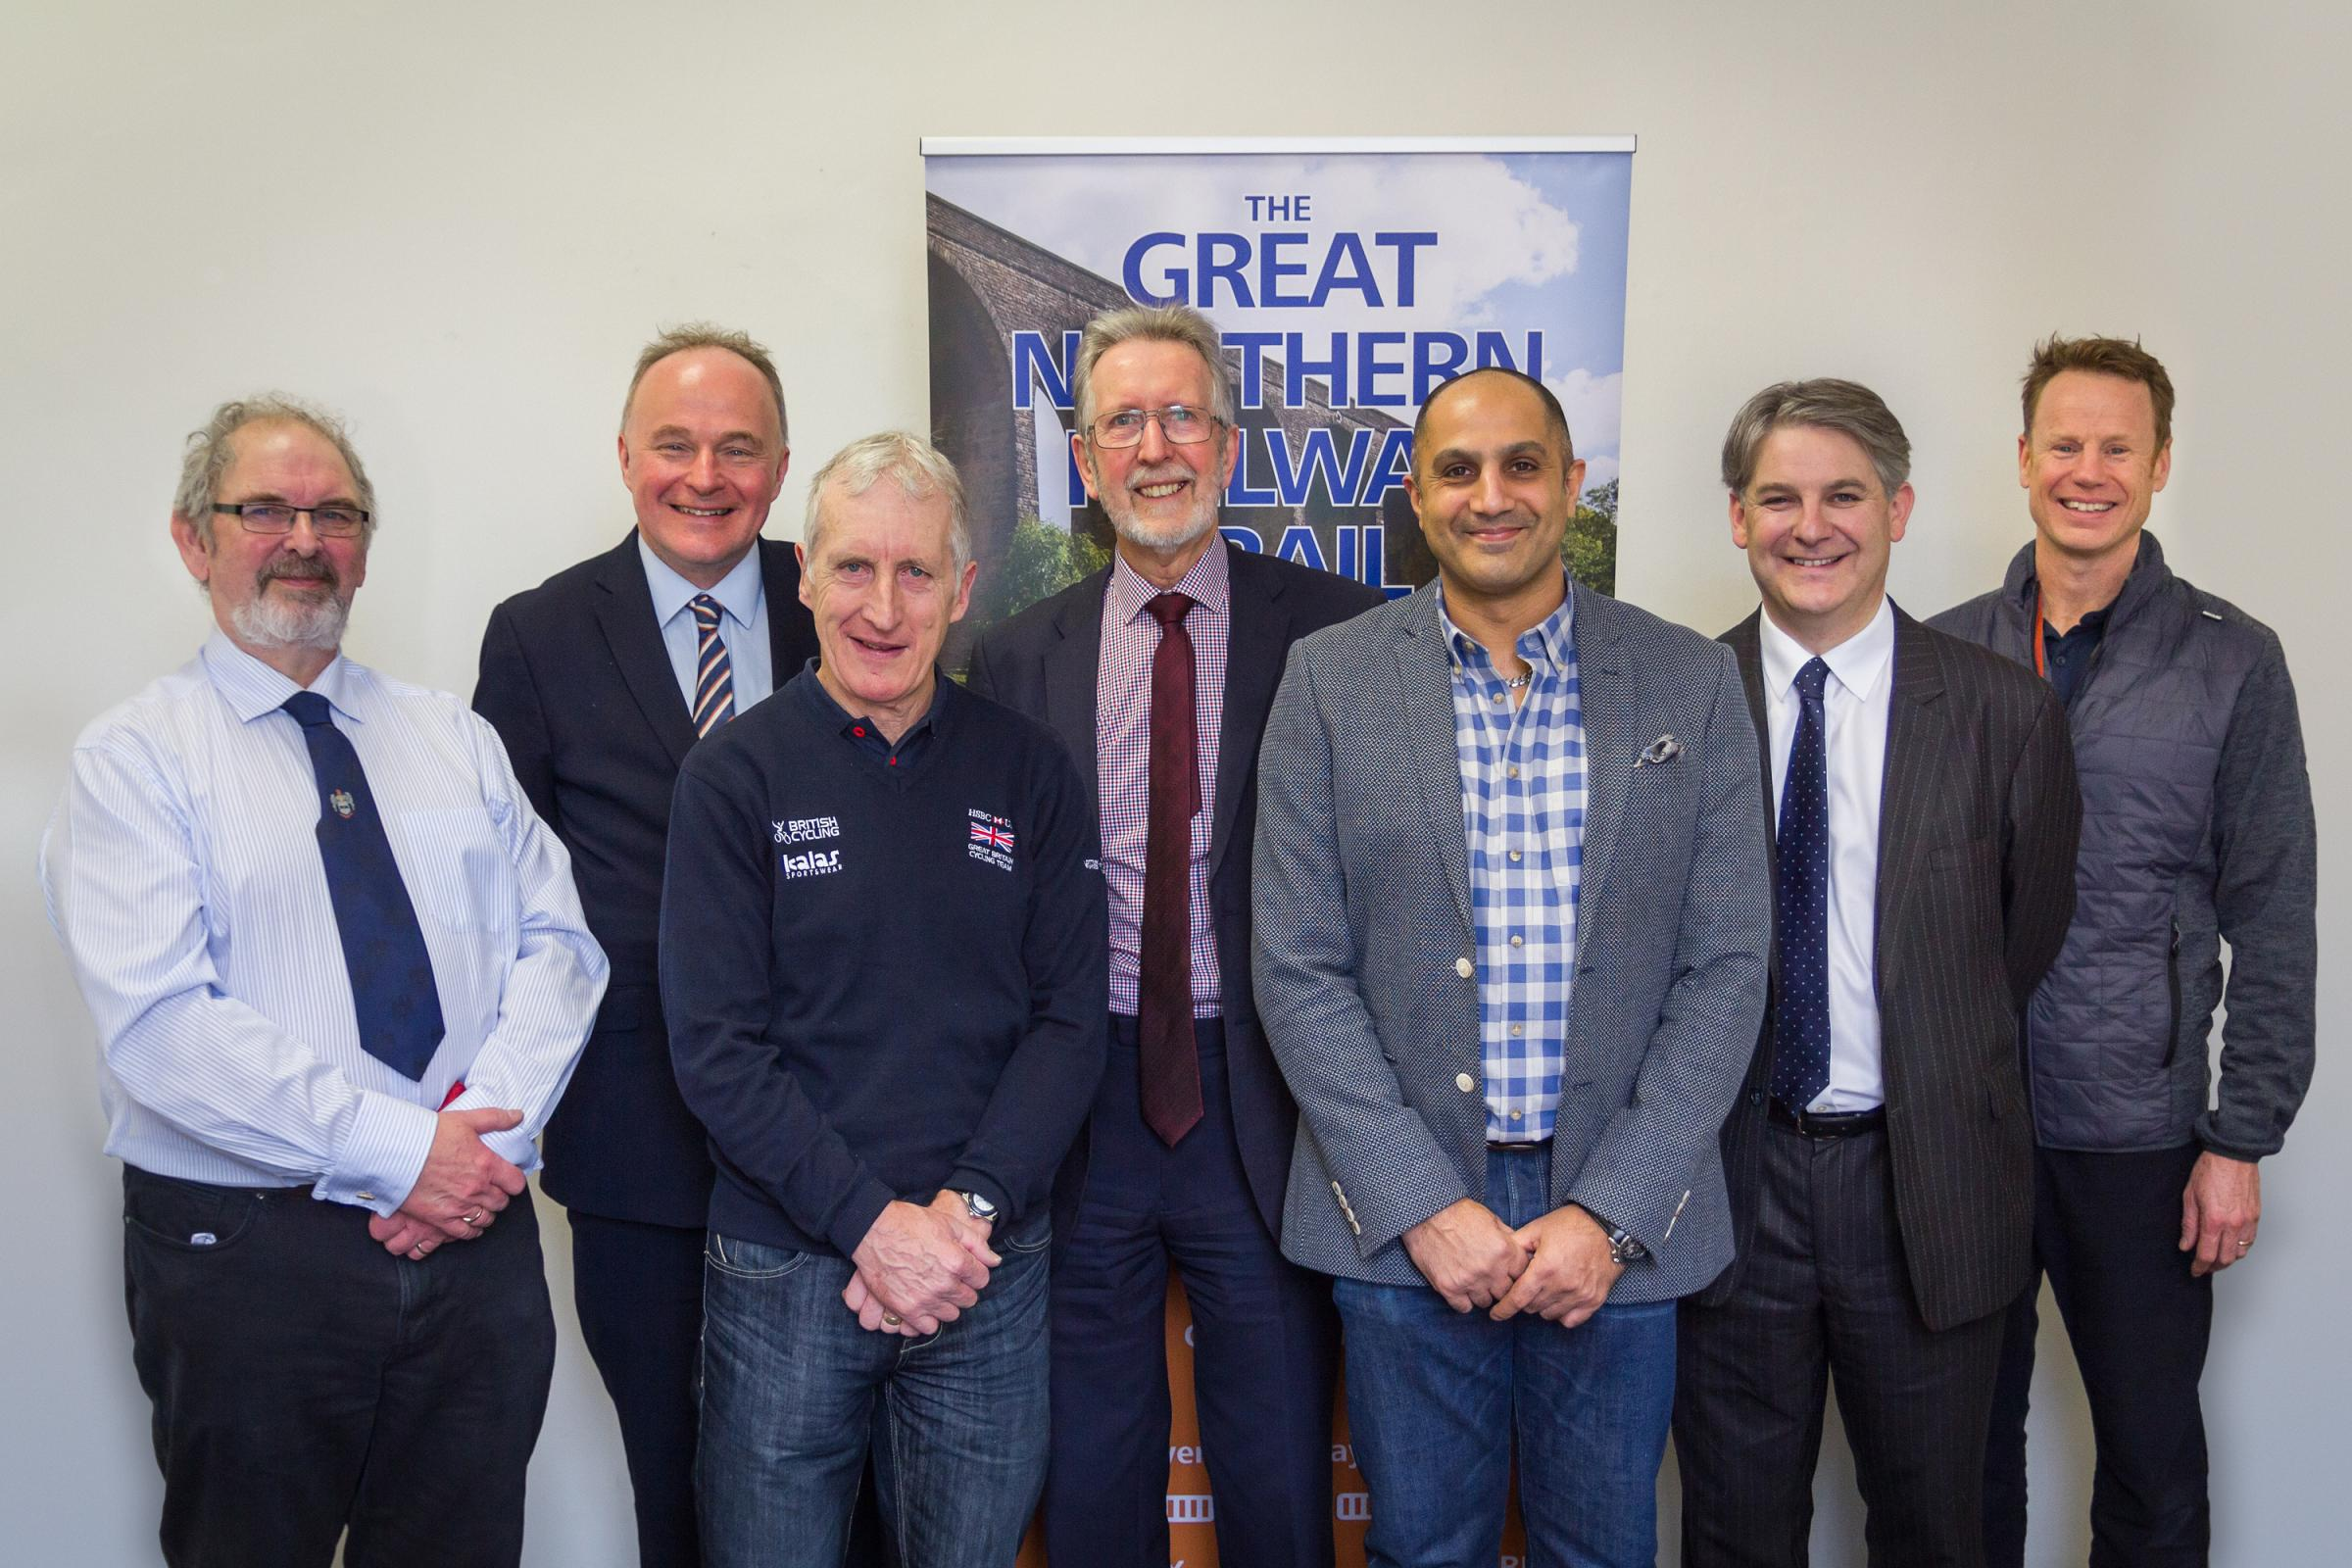 John Grogan, second from left, and Philip Davies, second from right, with members of the Great Northern Railway Trail joint committee